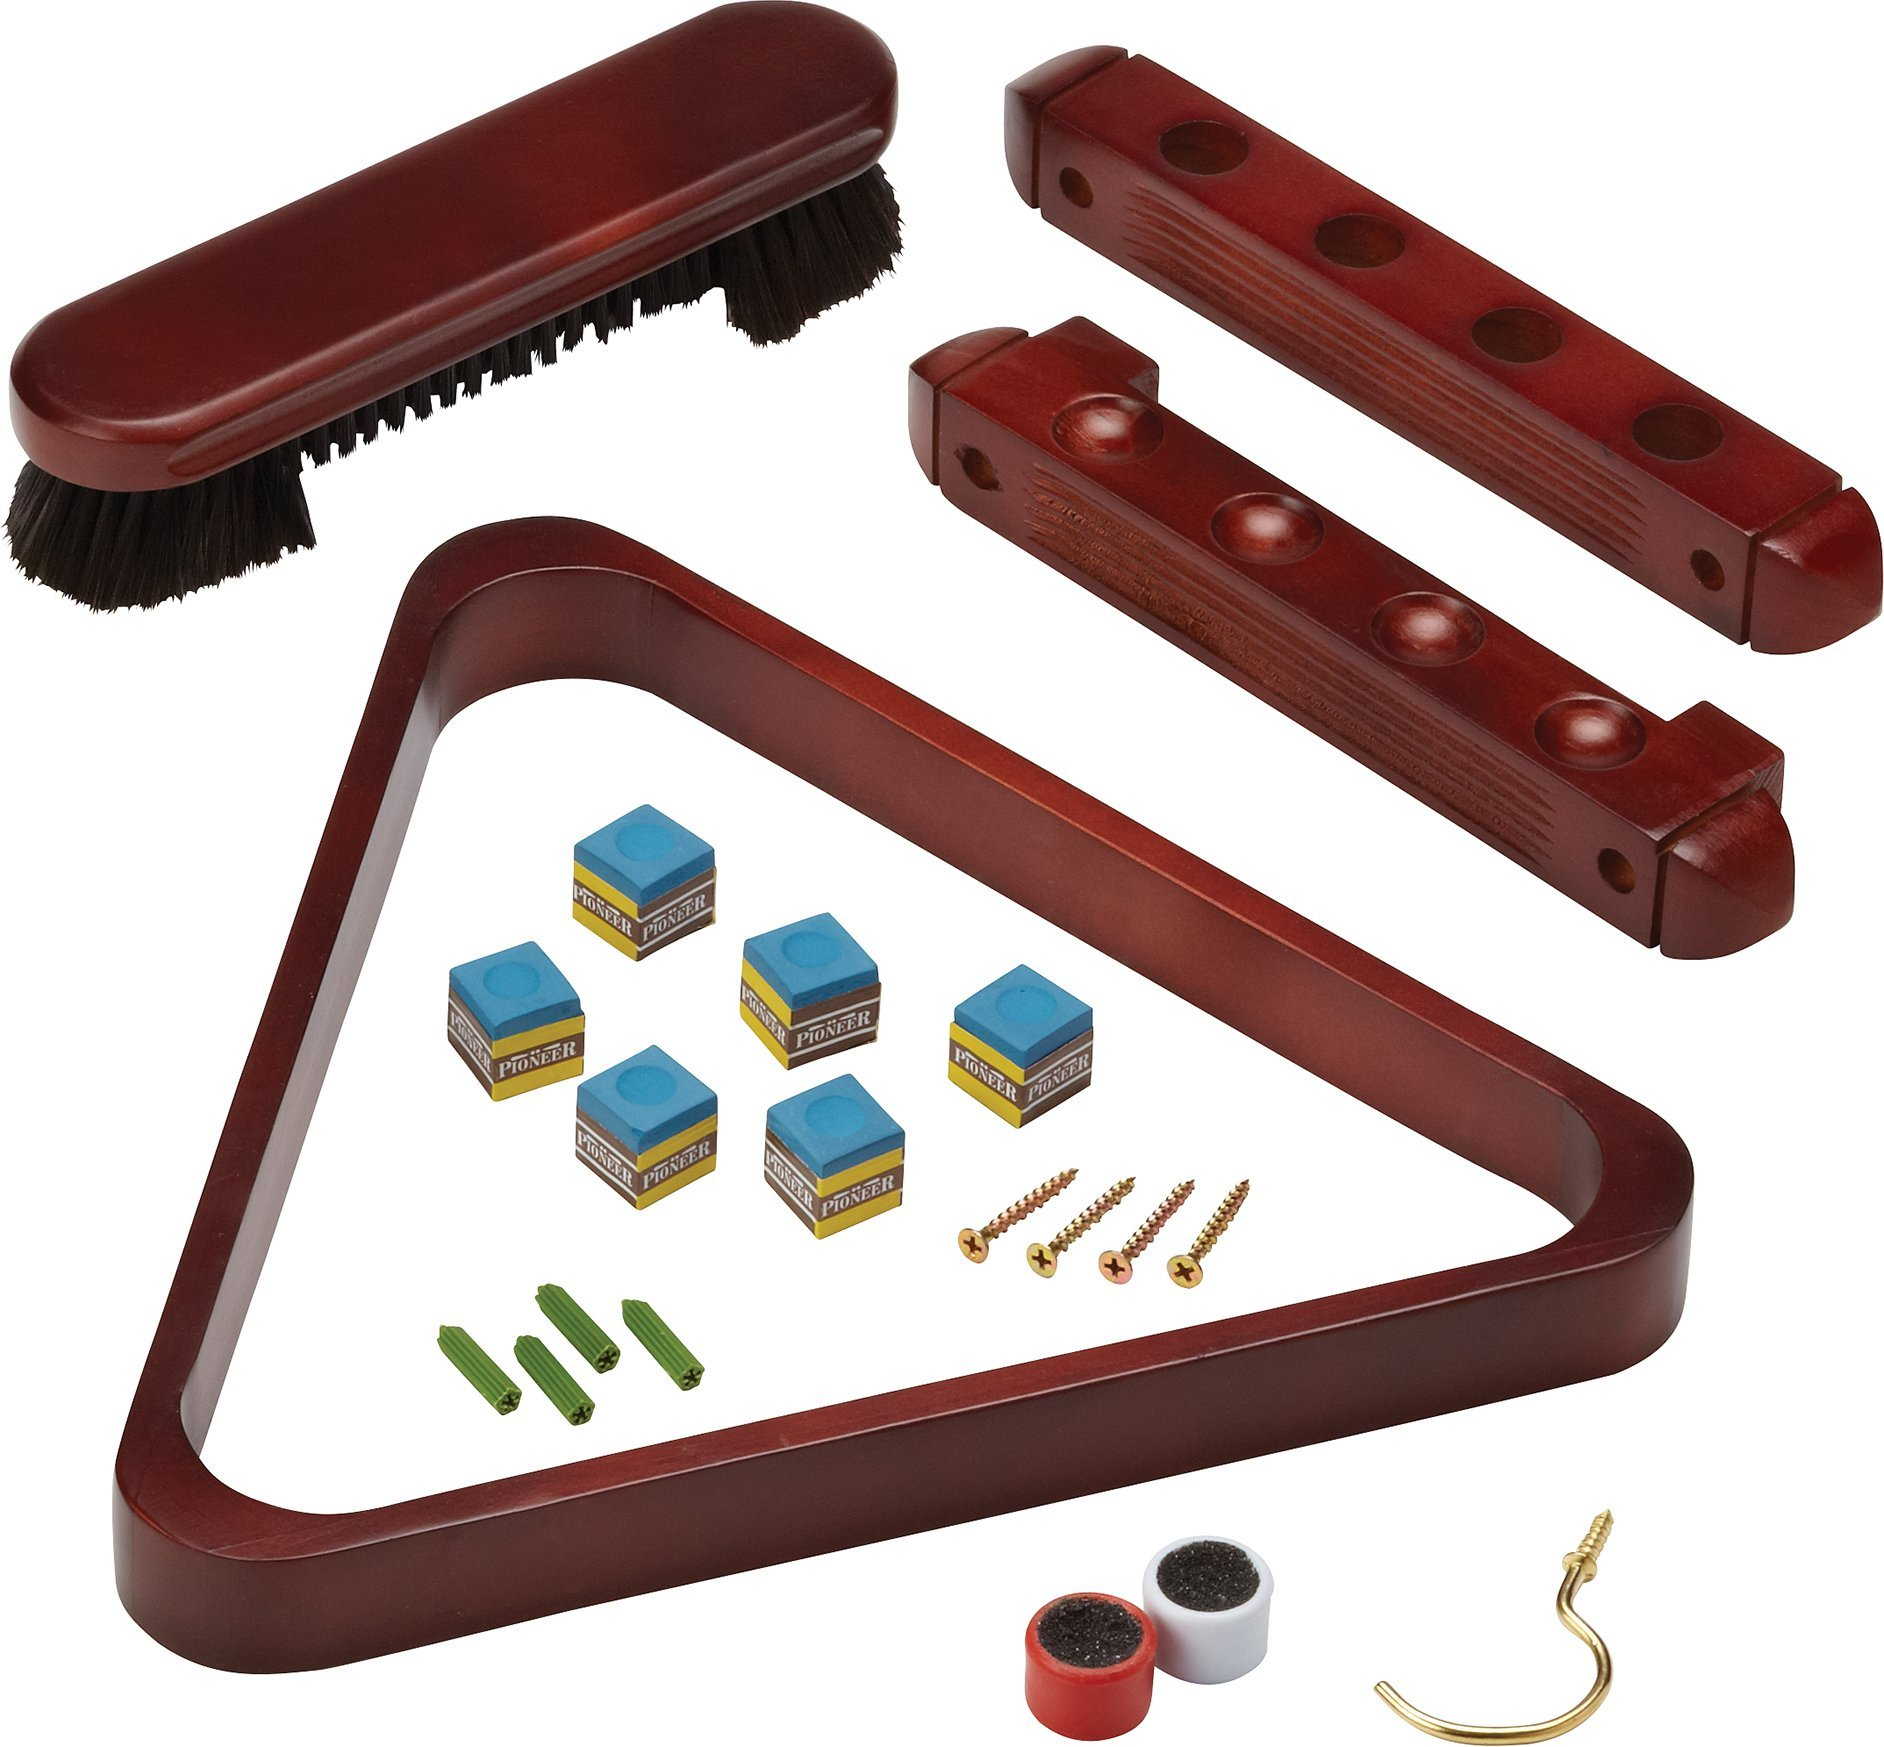 Fat Cat 2-Piece Wall Mounted Billiard/Pool Cue Rack and Accessory Set